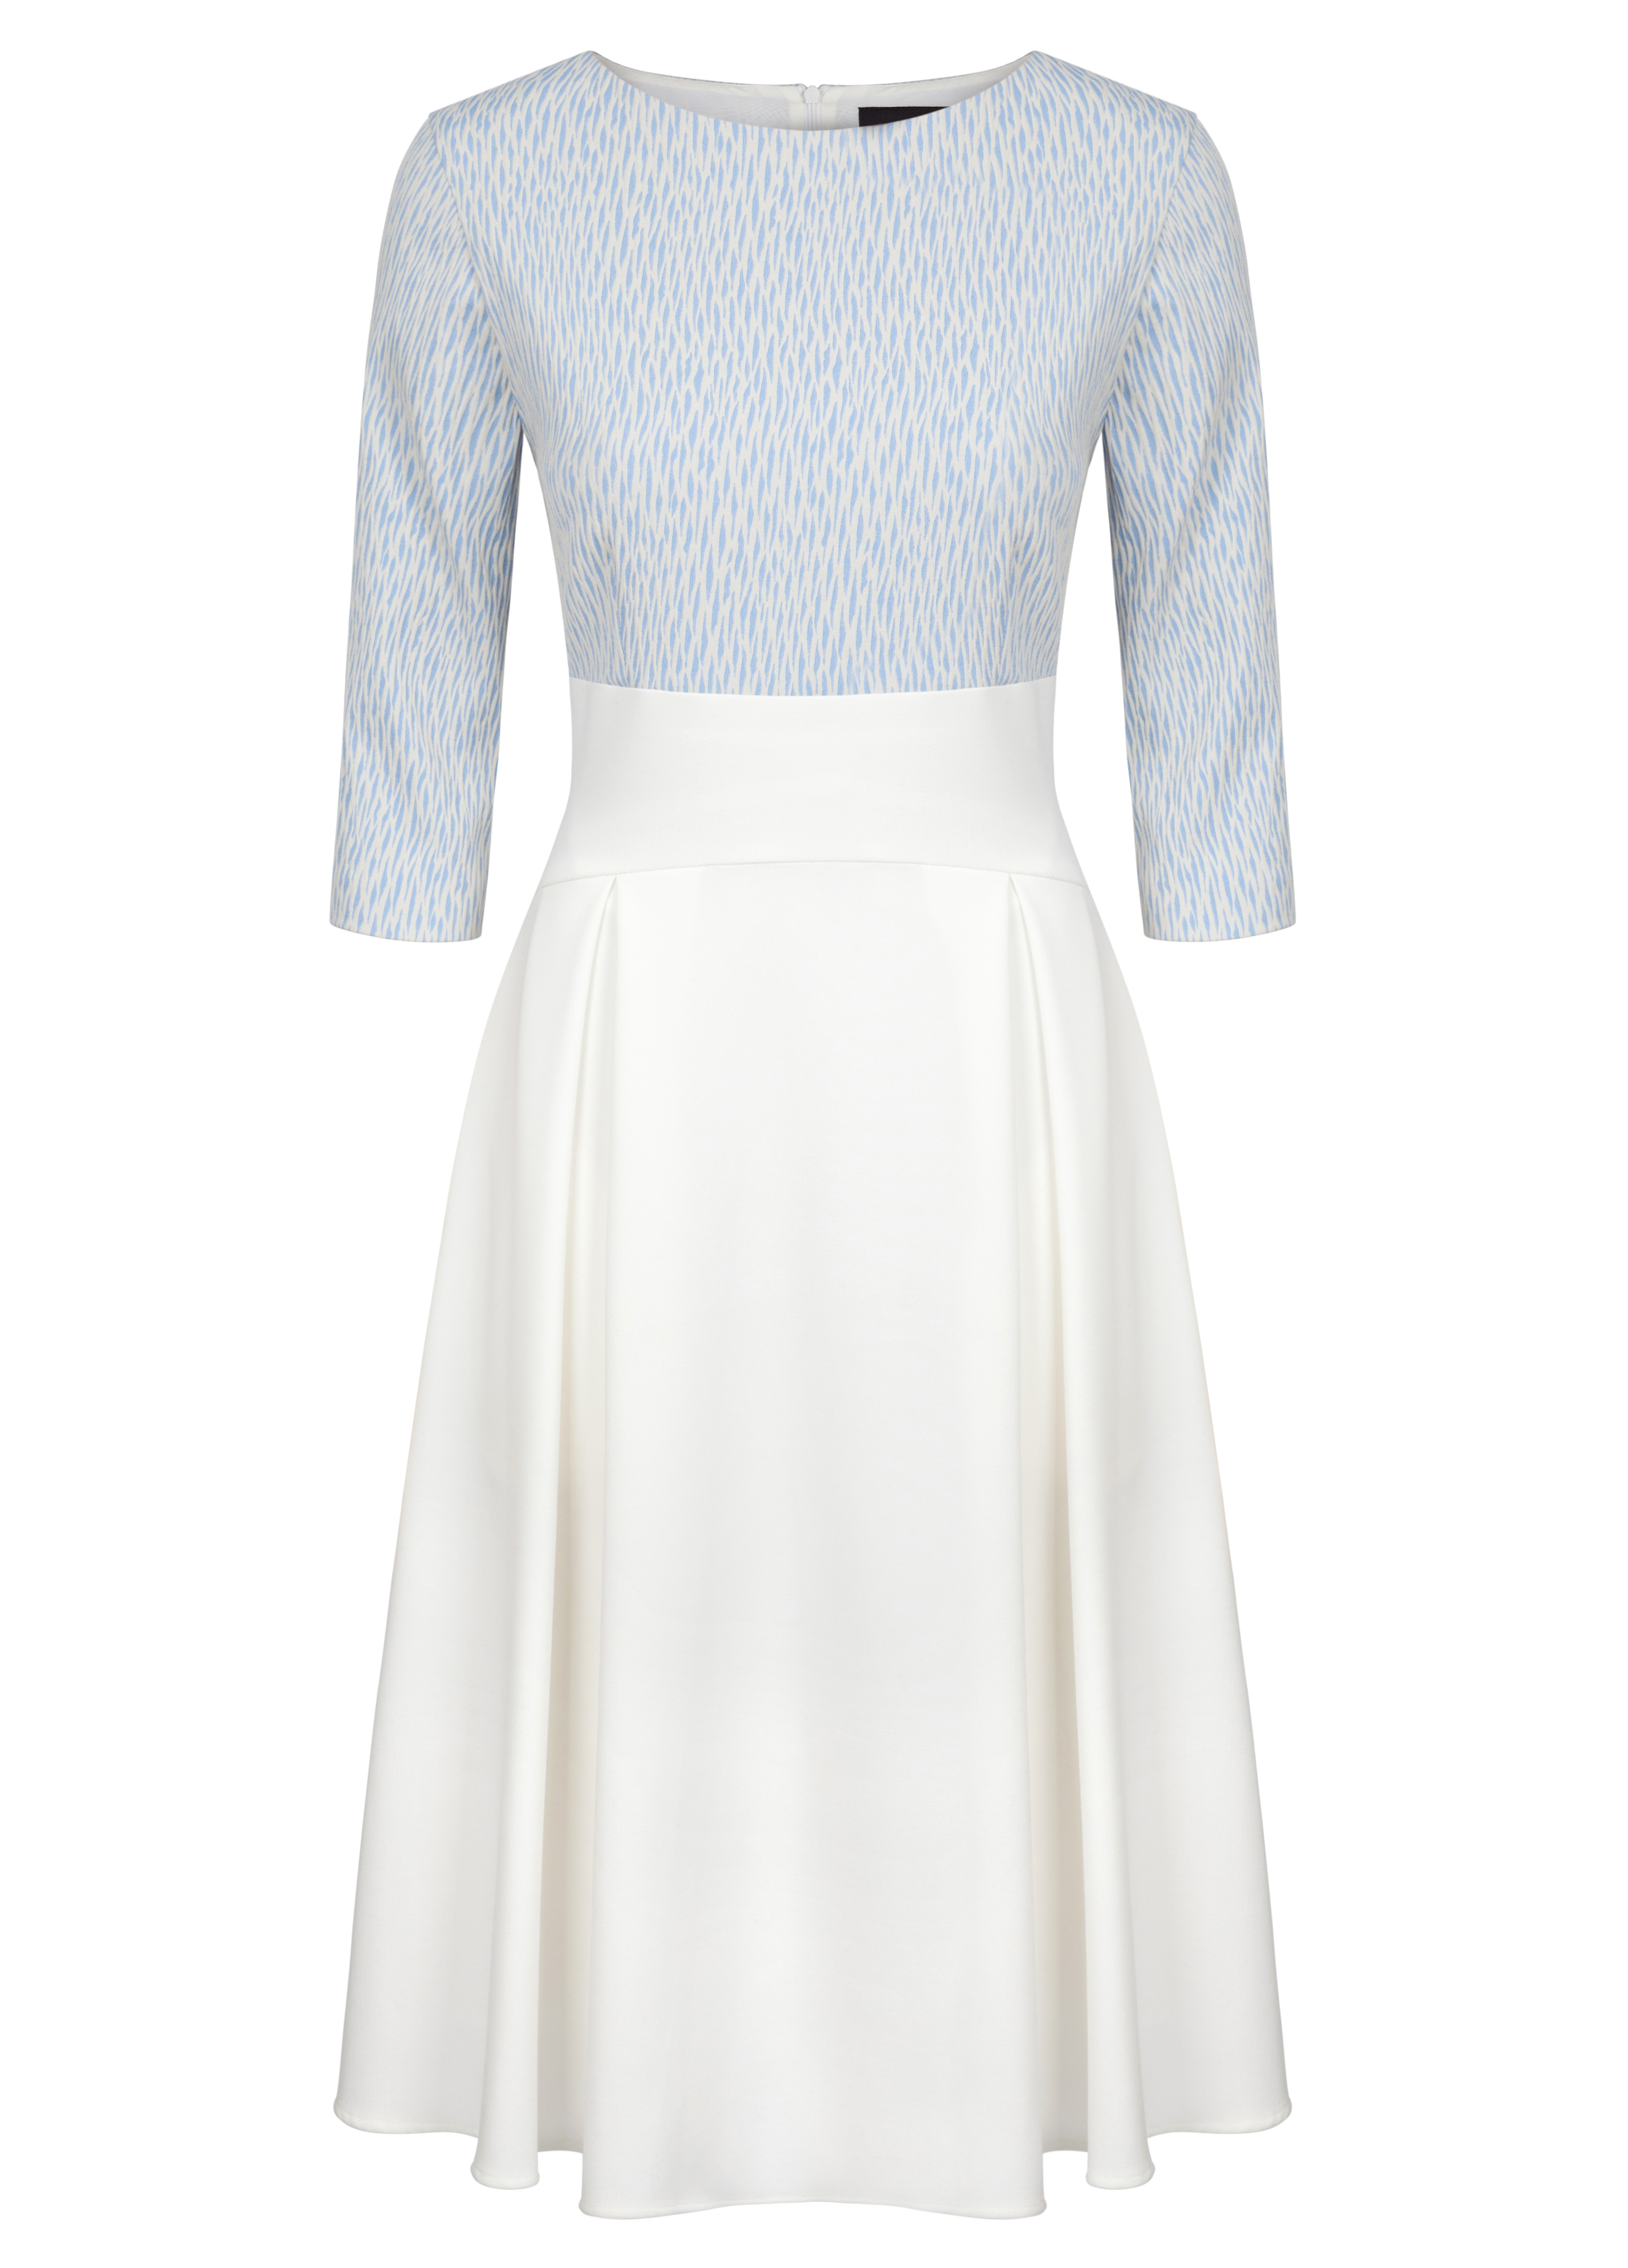 Fee G Ivory and Blue Jaquard Dress